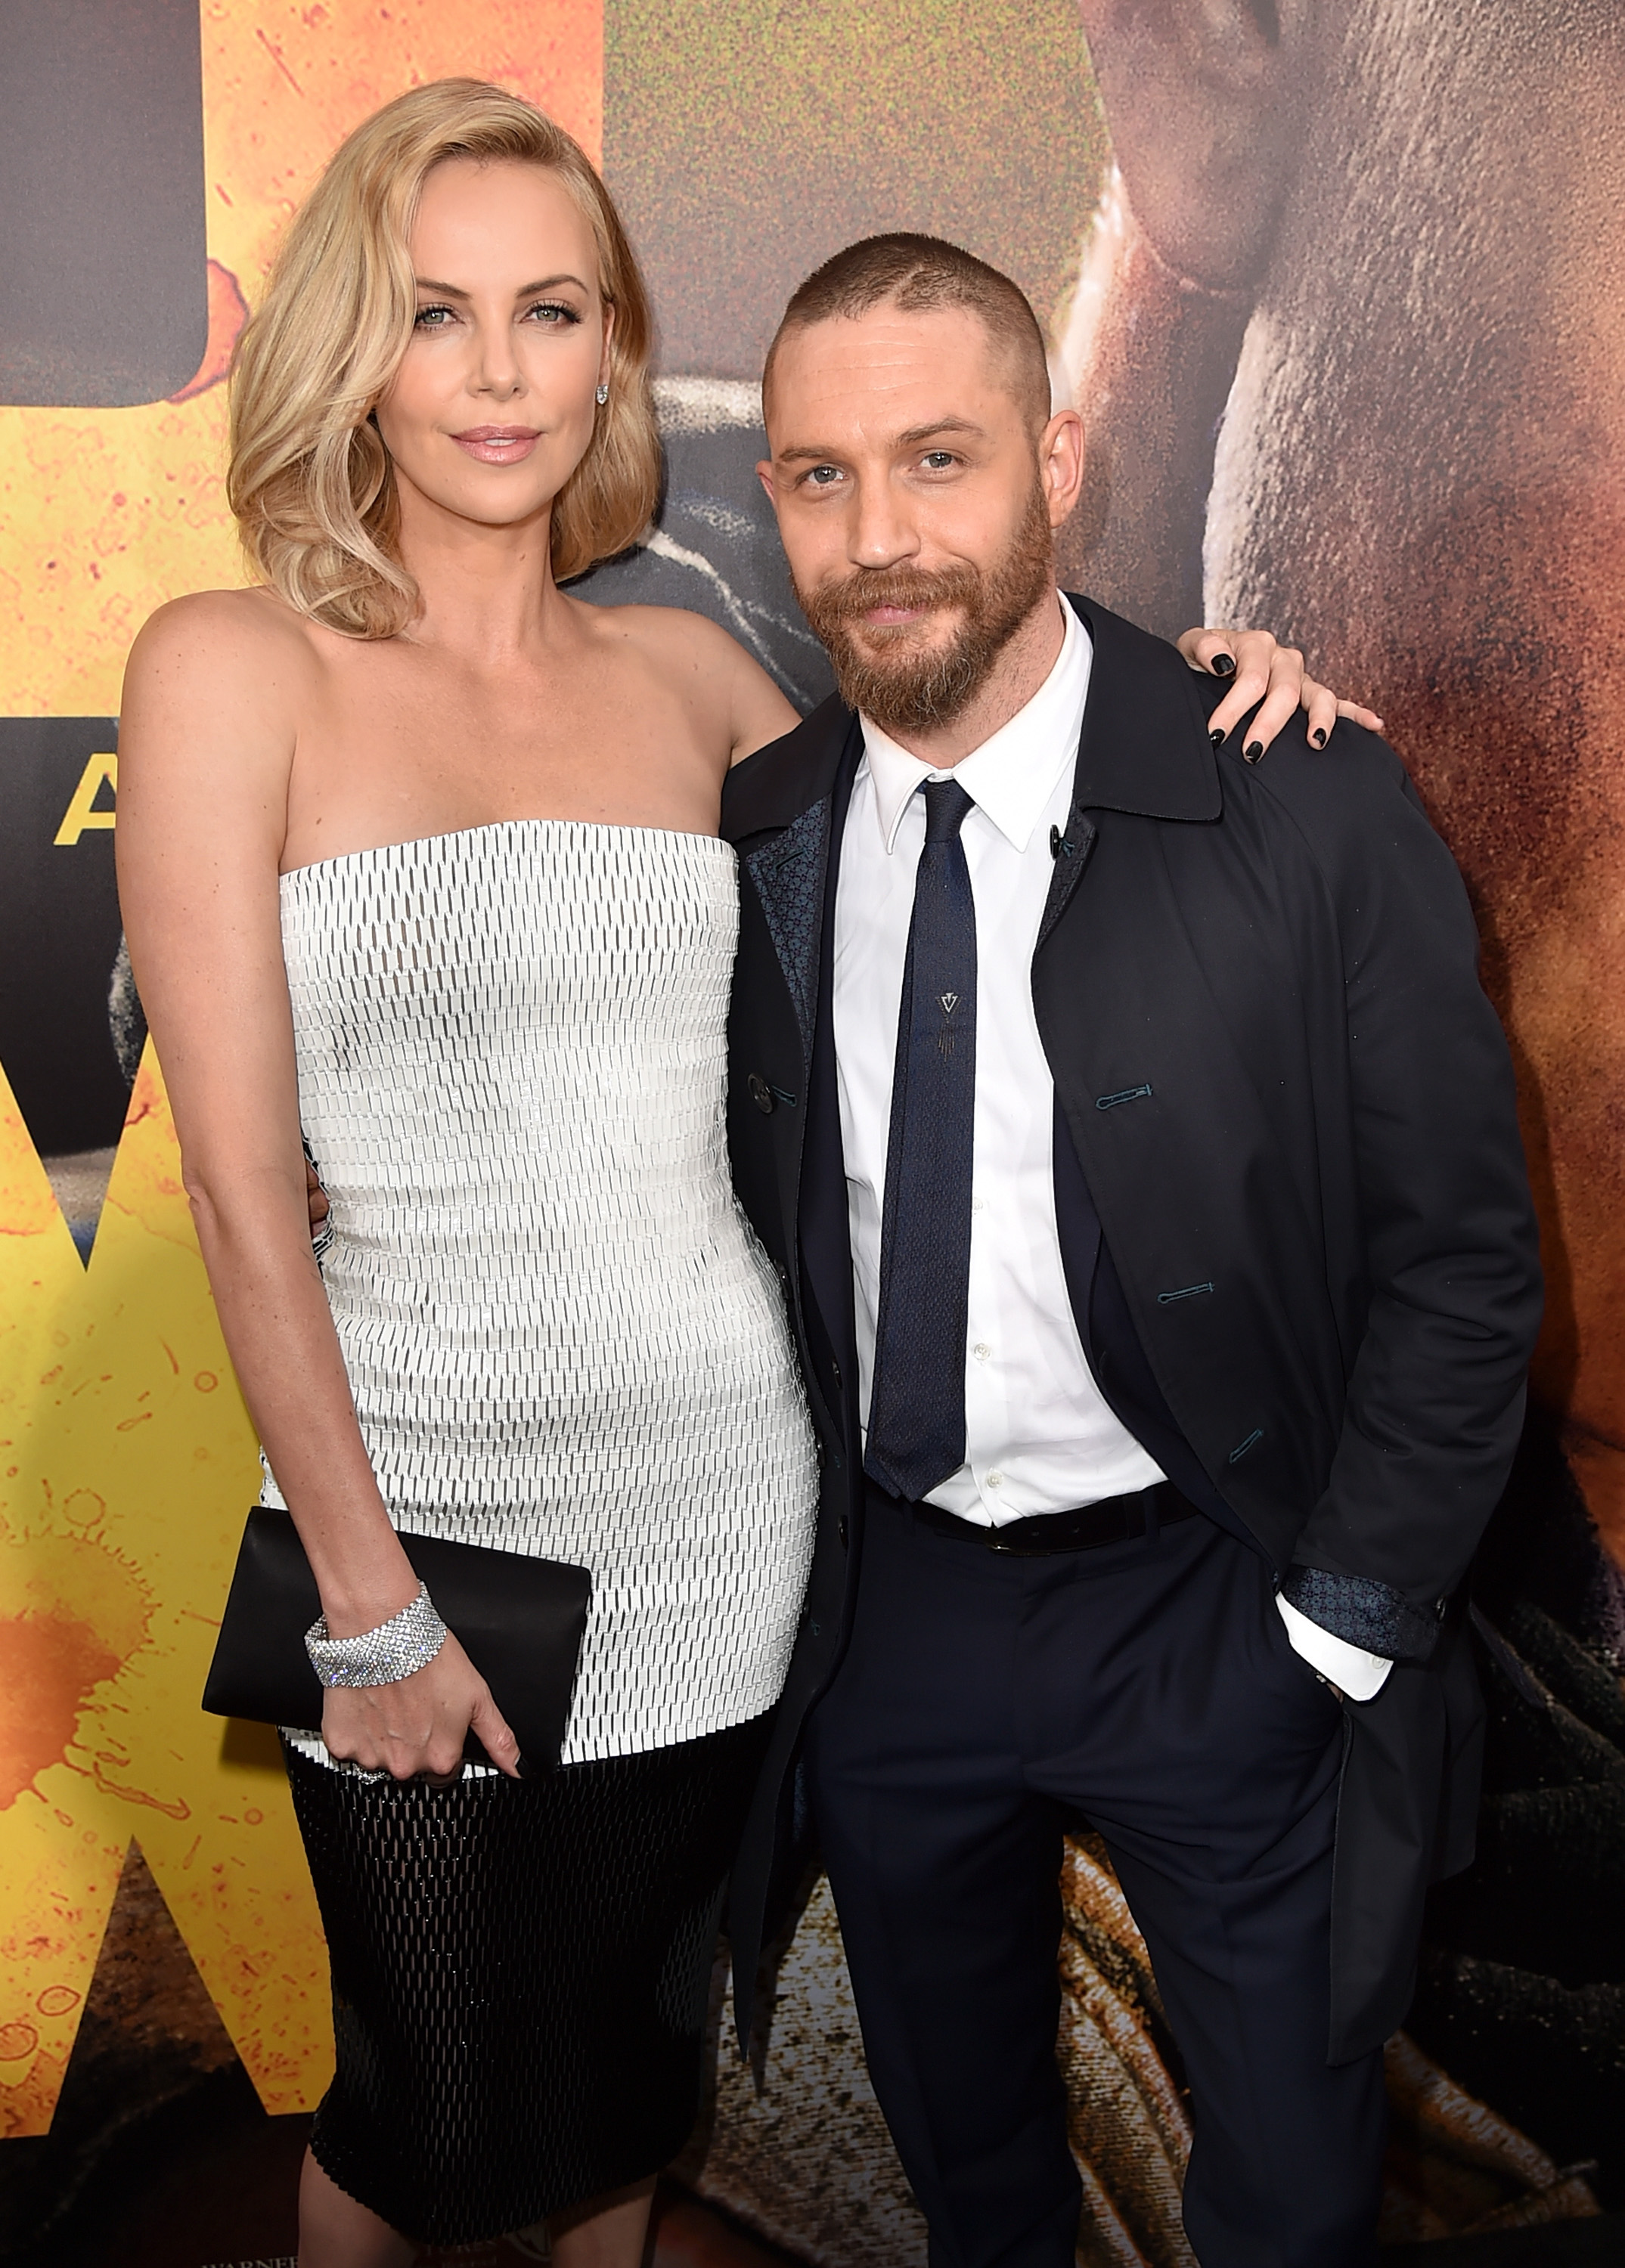 So, Charlize Theron is actually taller than Tom Hardy... Who knew?